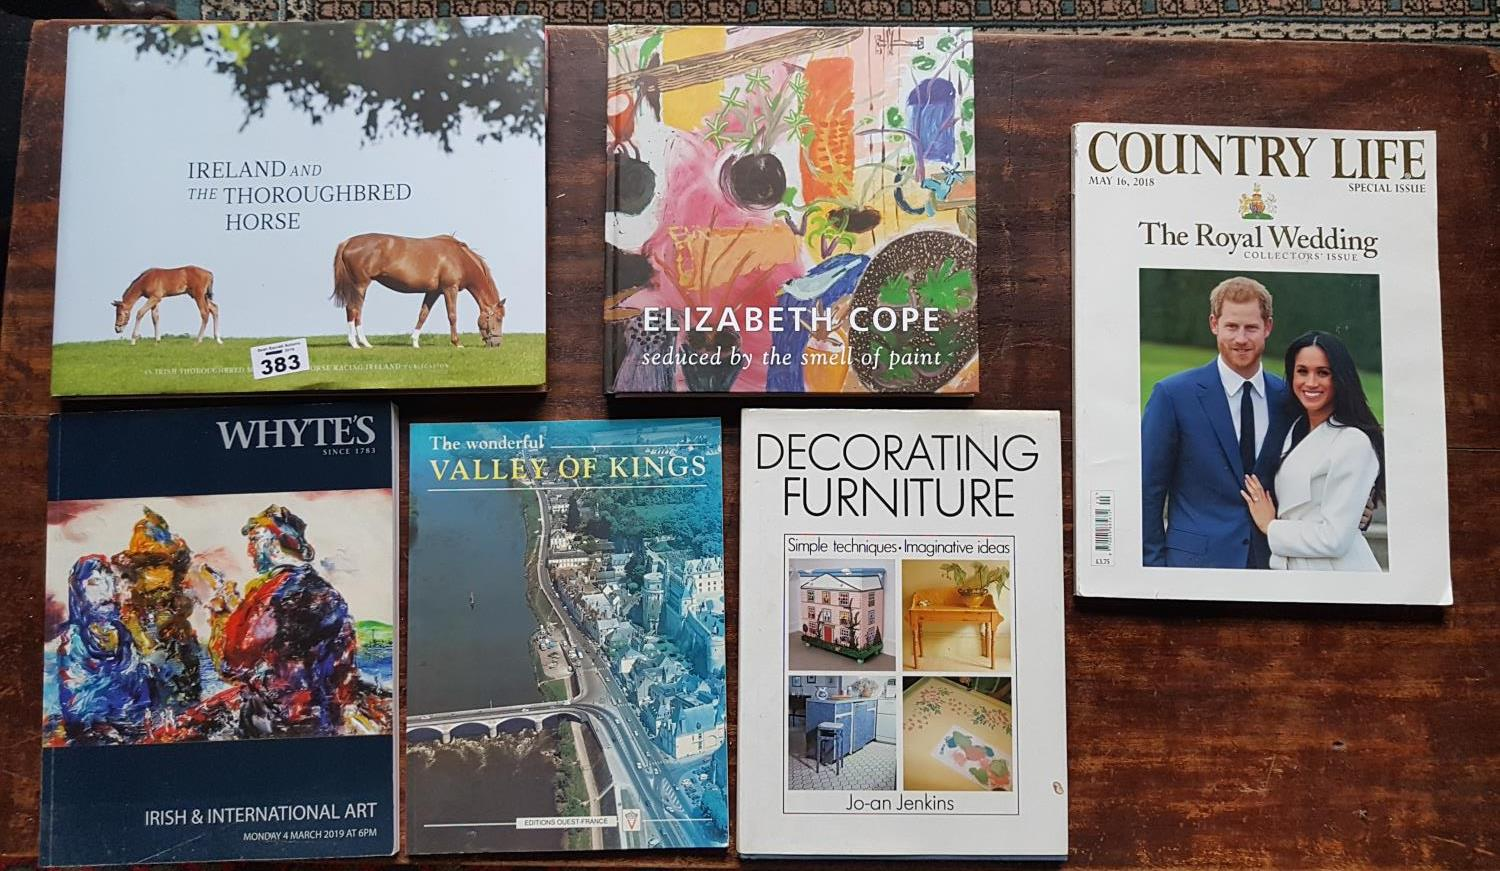 Lot 383 - Ireland and the Irish Thoroughbred Horse along with a quantity of Country Life Magazines.